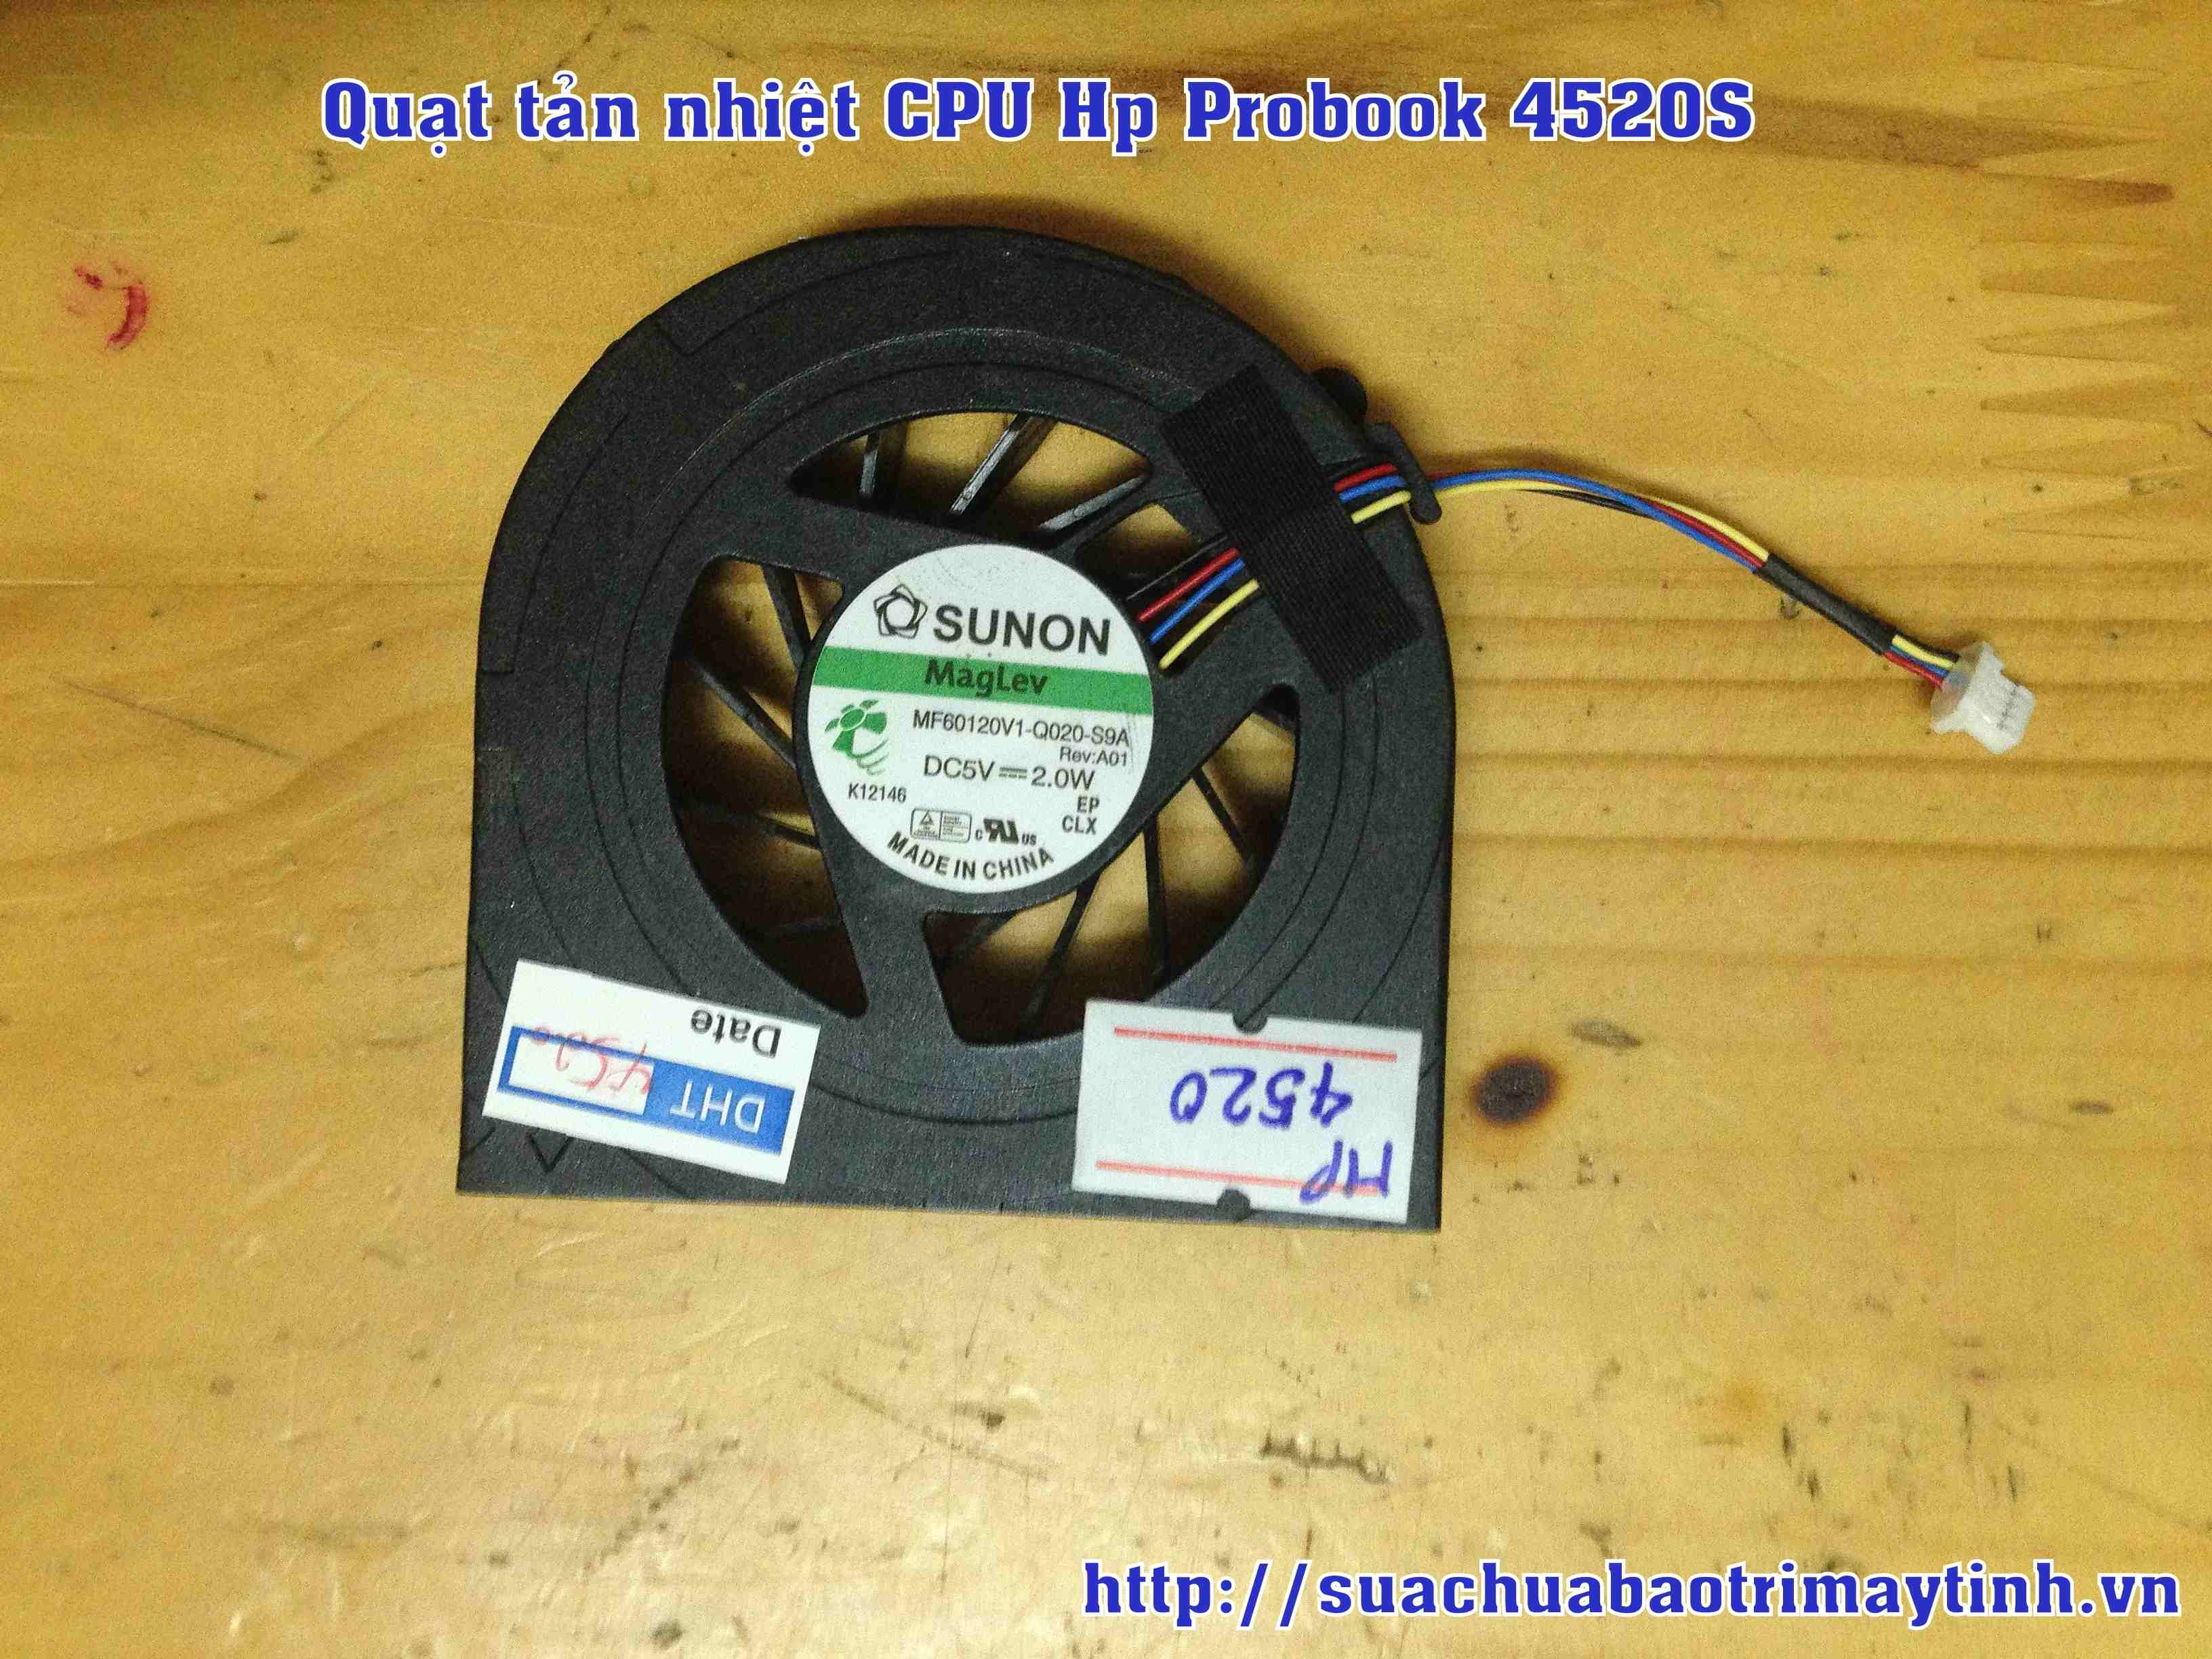 quat tan nhiet cpu hp 4520.JPG